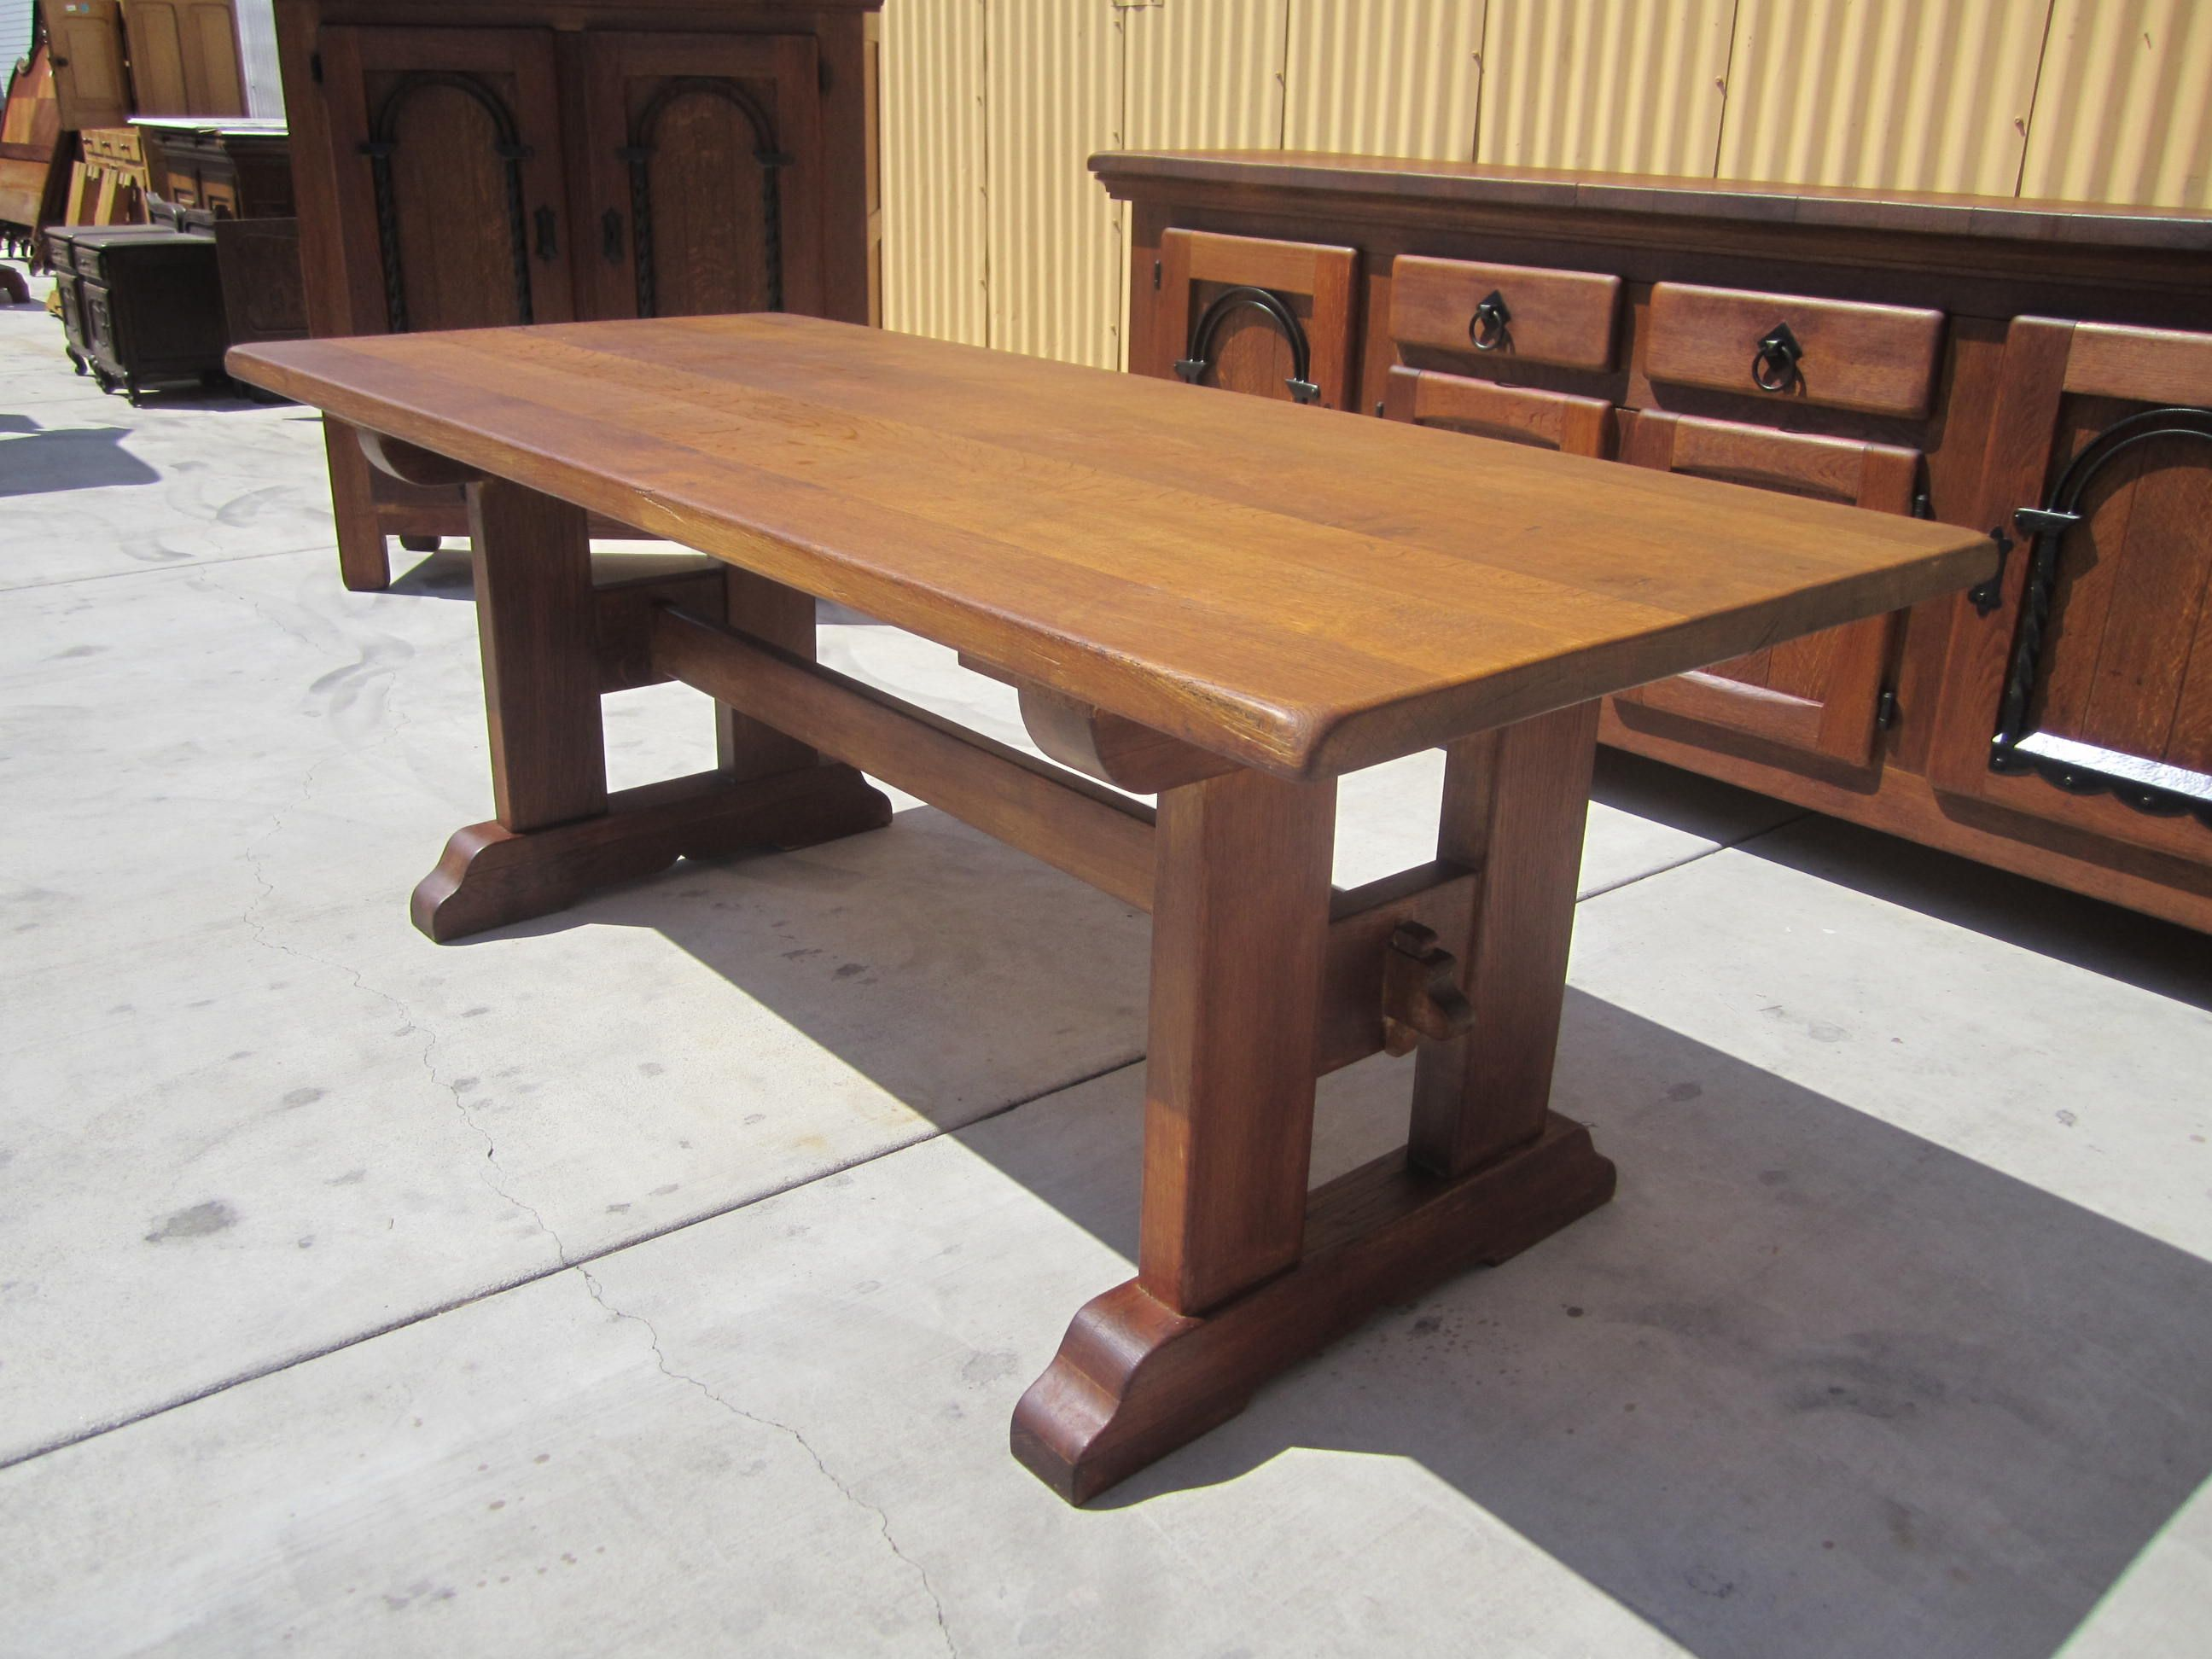 An antique rustic dining table - French Antique Rustic Trestle Table Dining Table Antique Furniture